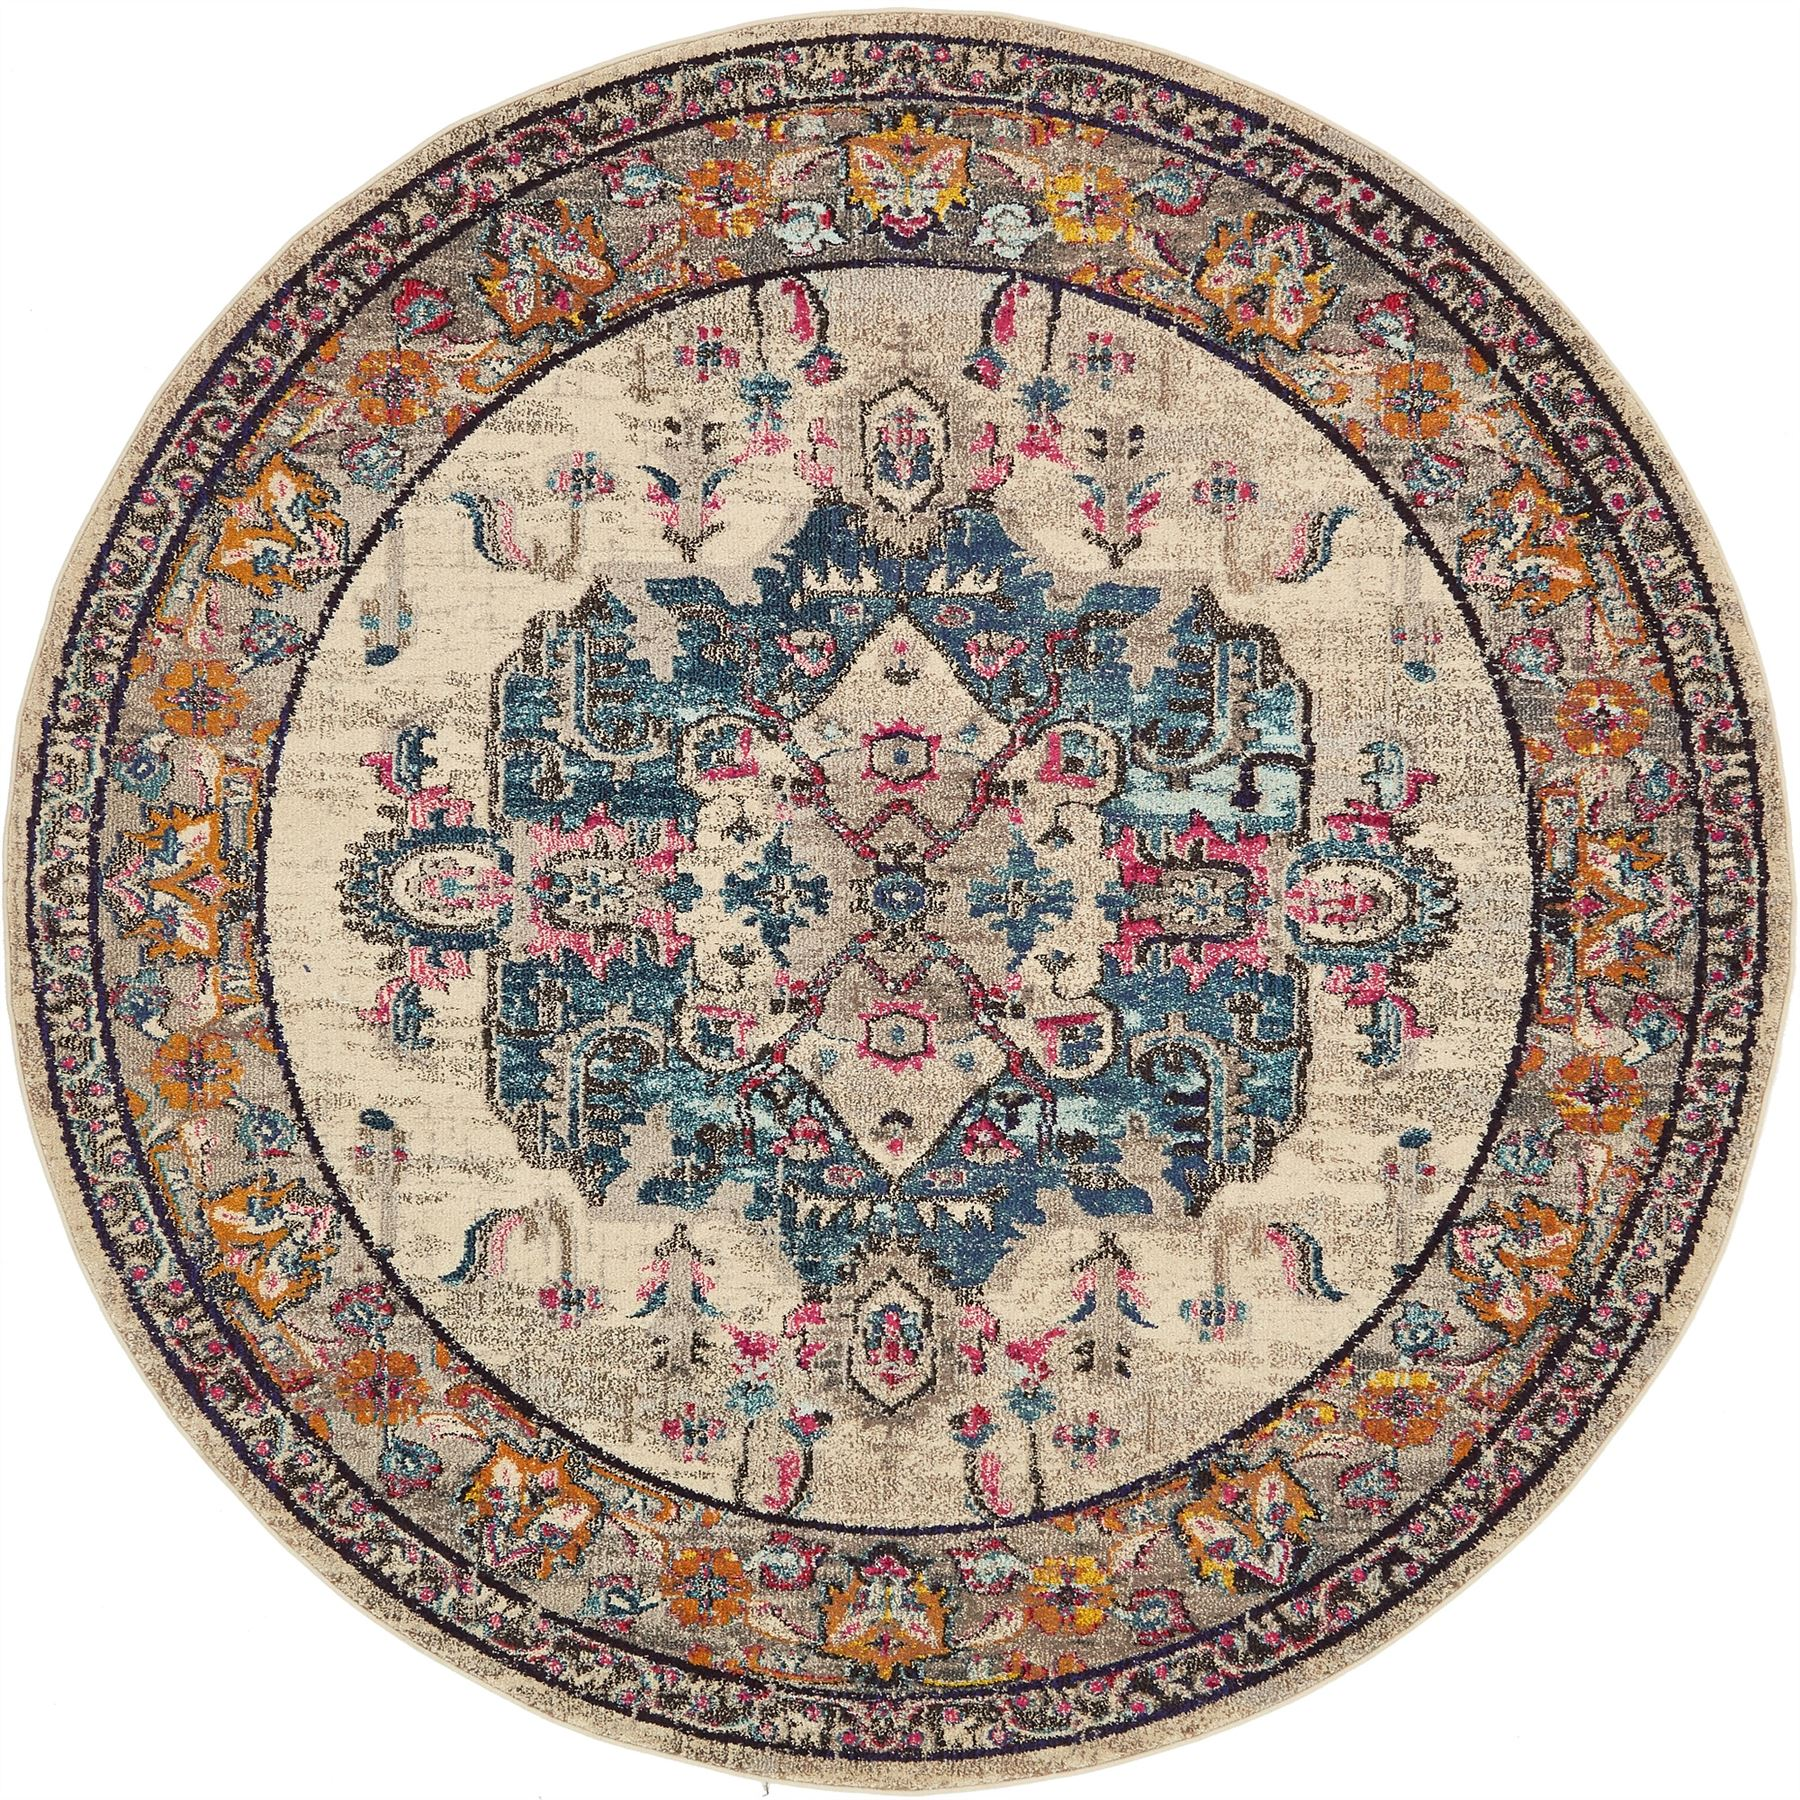 Modern Rugs Vintage: Medallion Traditional Carpets Over-dyed Vintage Modern